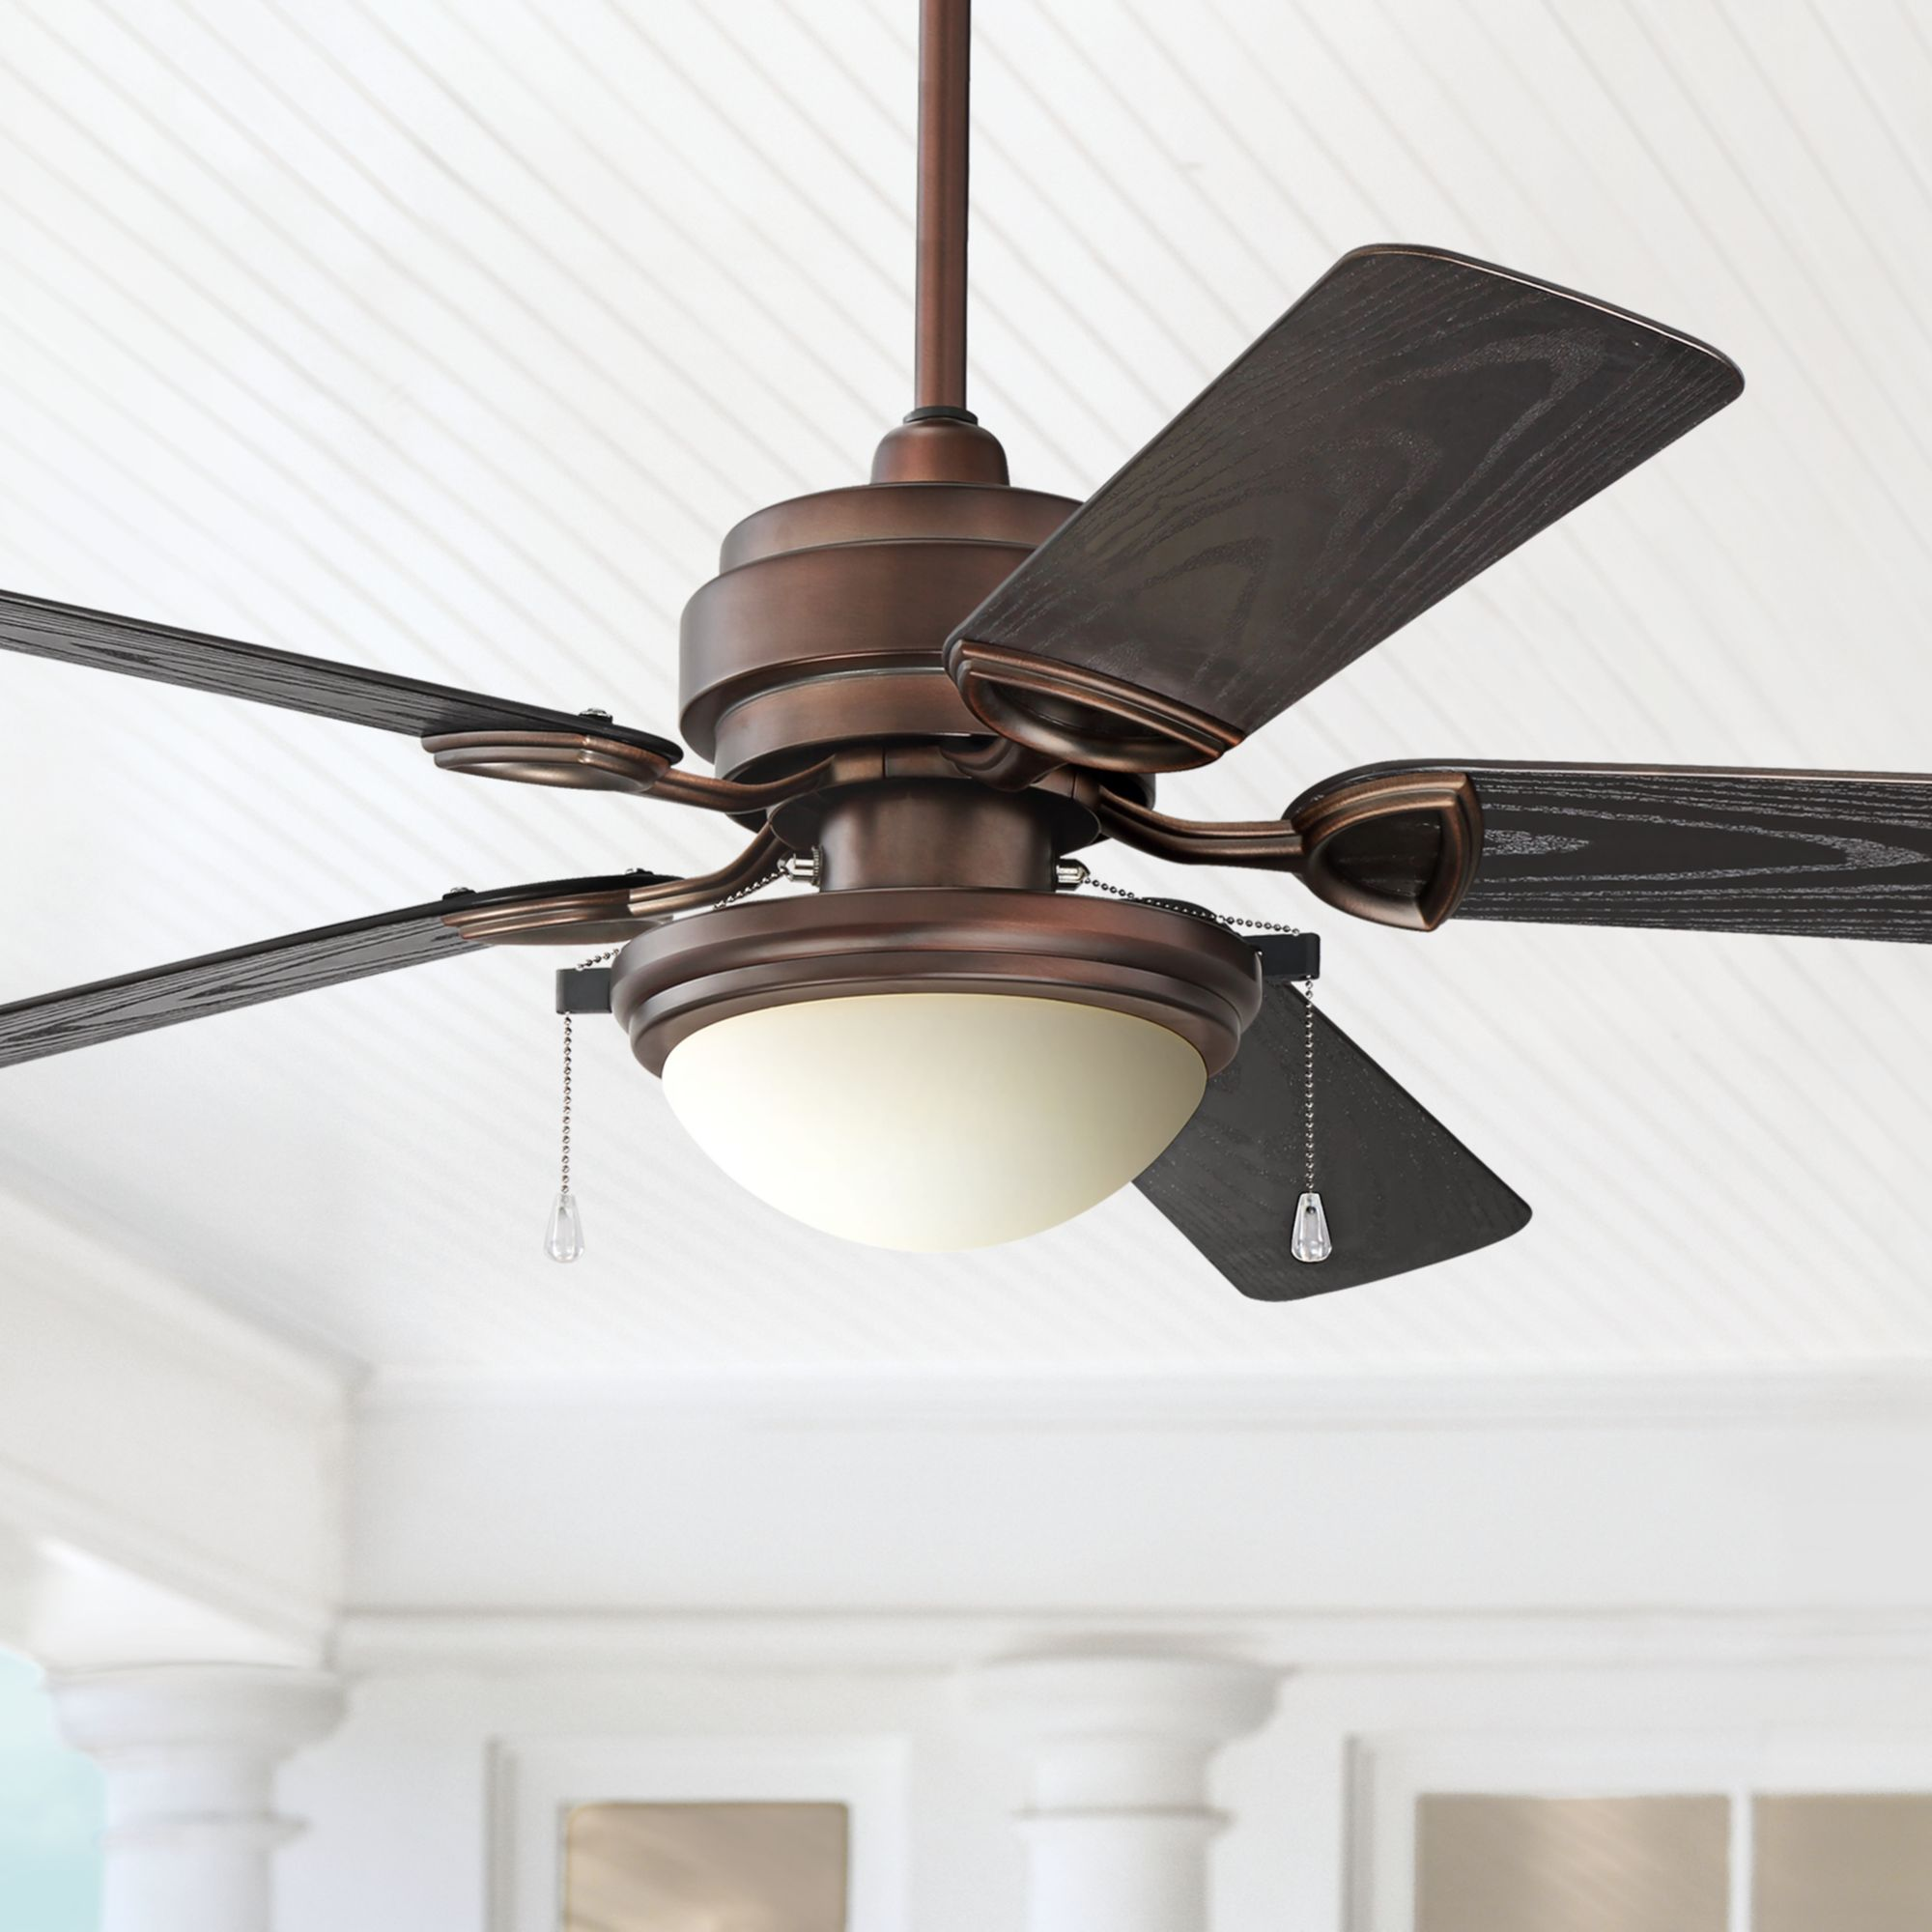 52 Casa Vieja Outdoor Ceiling Fan With Light Led Oil Brushed Bronze Wet Rated For Patio Porch Walmart Com Walmart Com